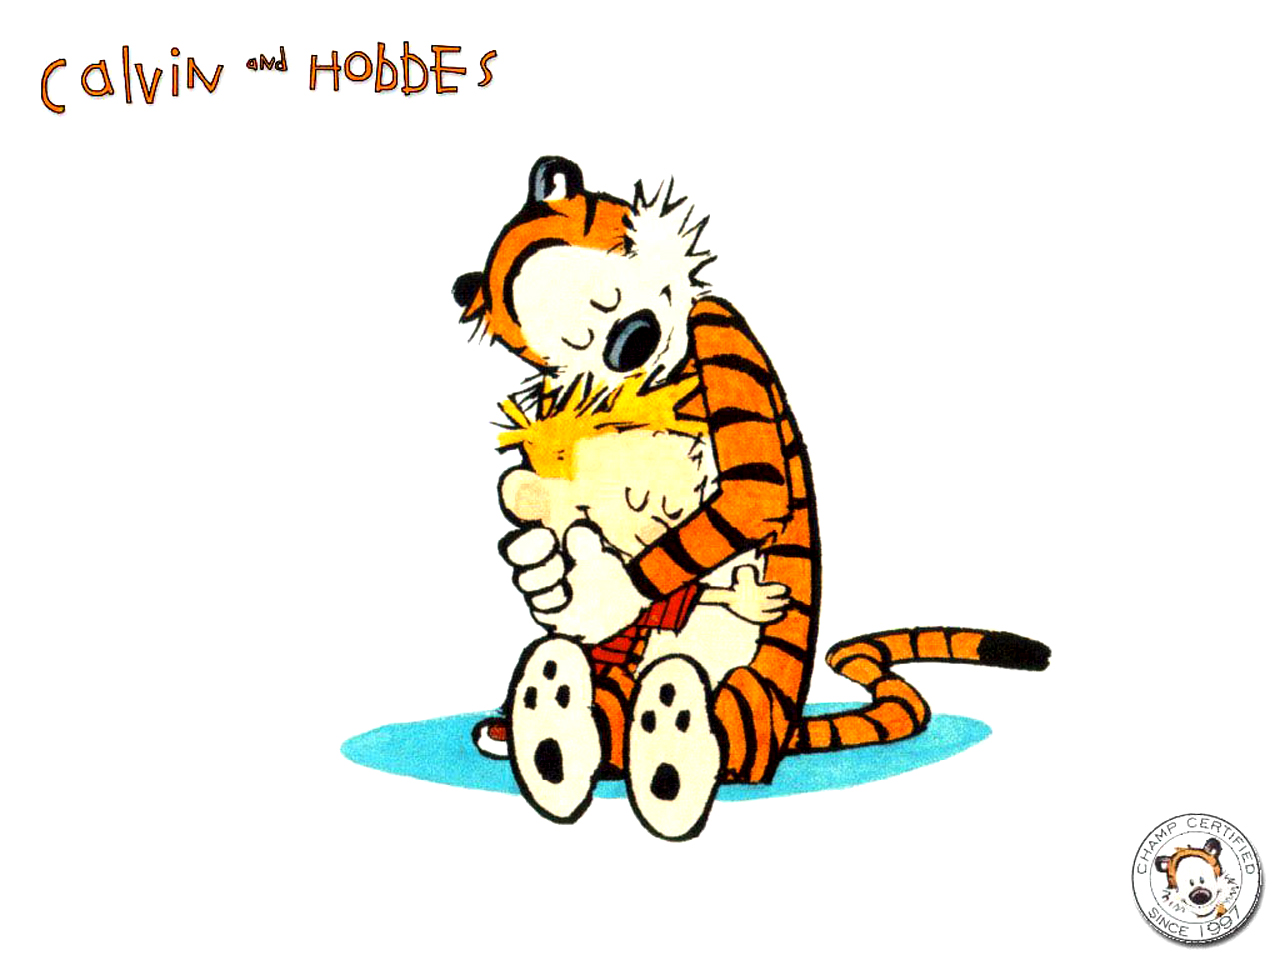 Calvin and Hobbes HD Cartoon Wallpapers Desktop Wallpapers 1280x960